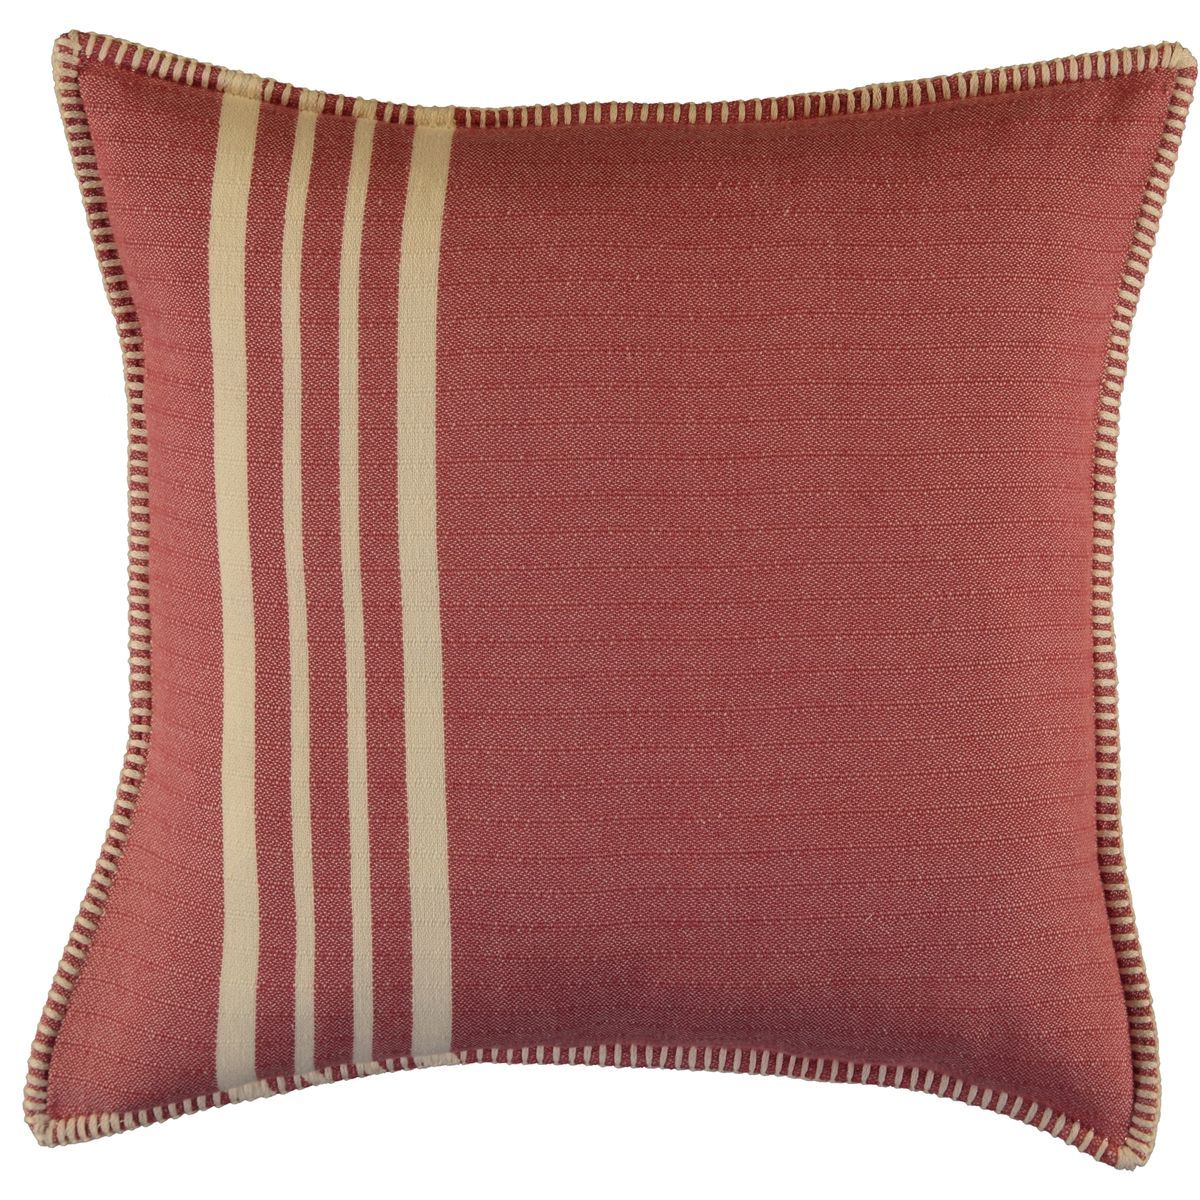 Cushion Cover Sultan - Dusty Rose / 45x45